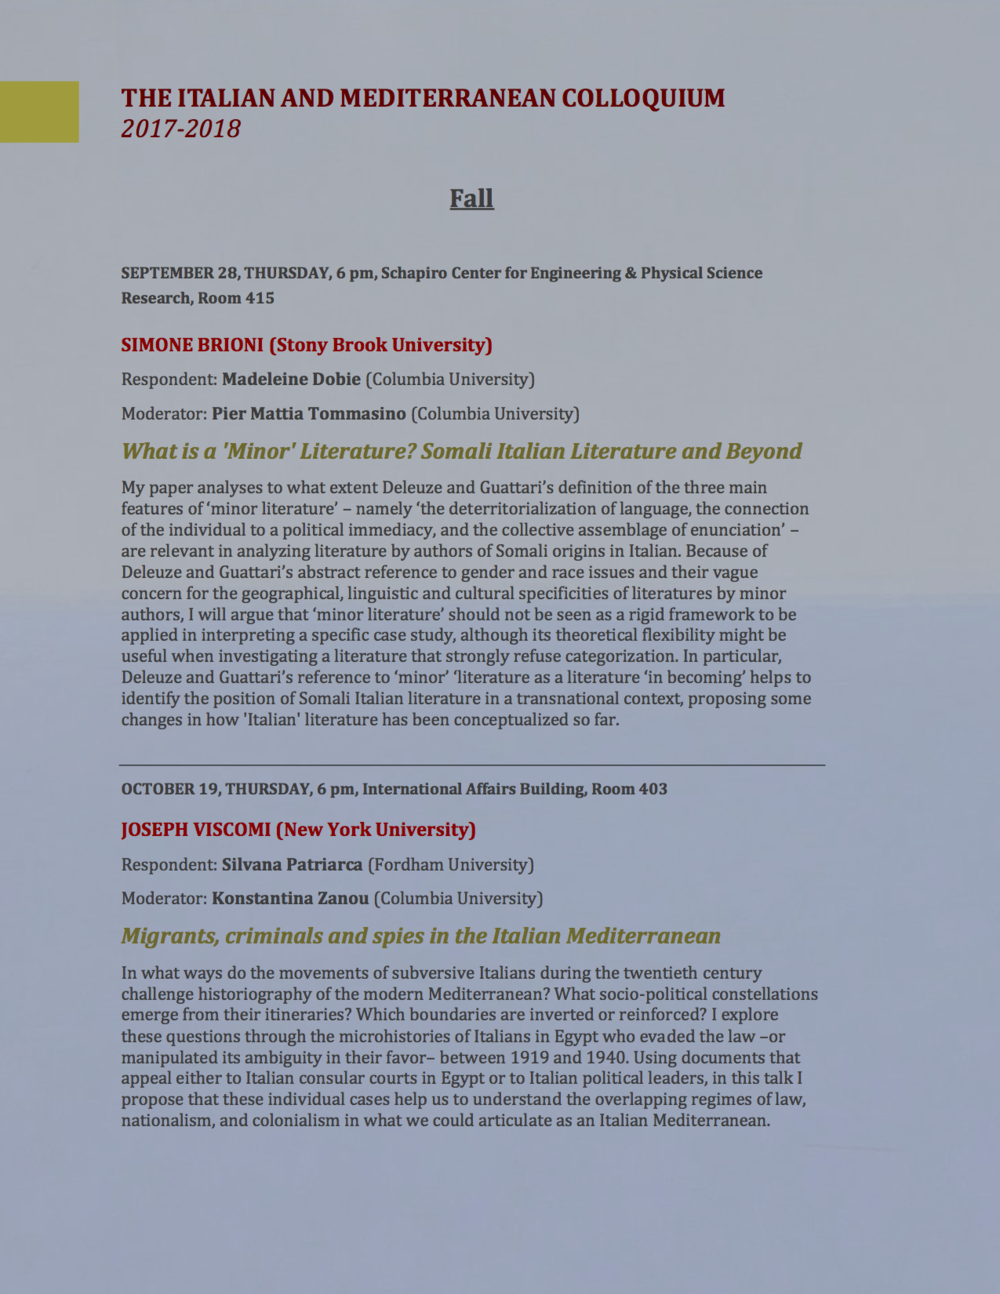 The_Italian_Mediterranean_Colloquium_Fall_2017_Program.png